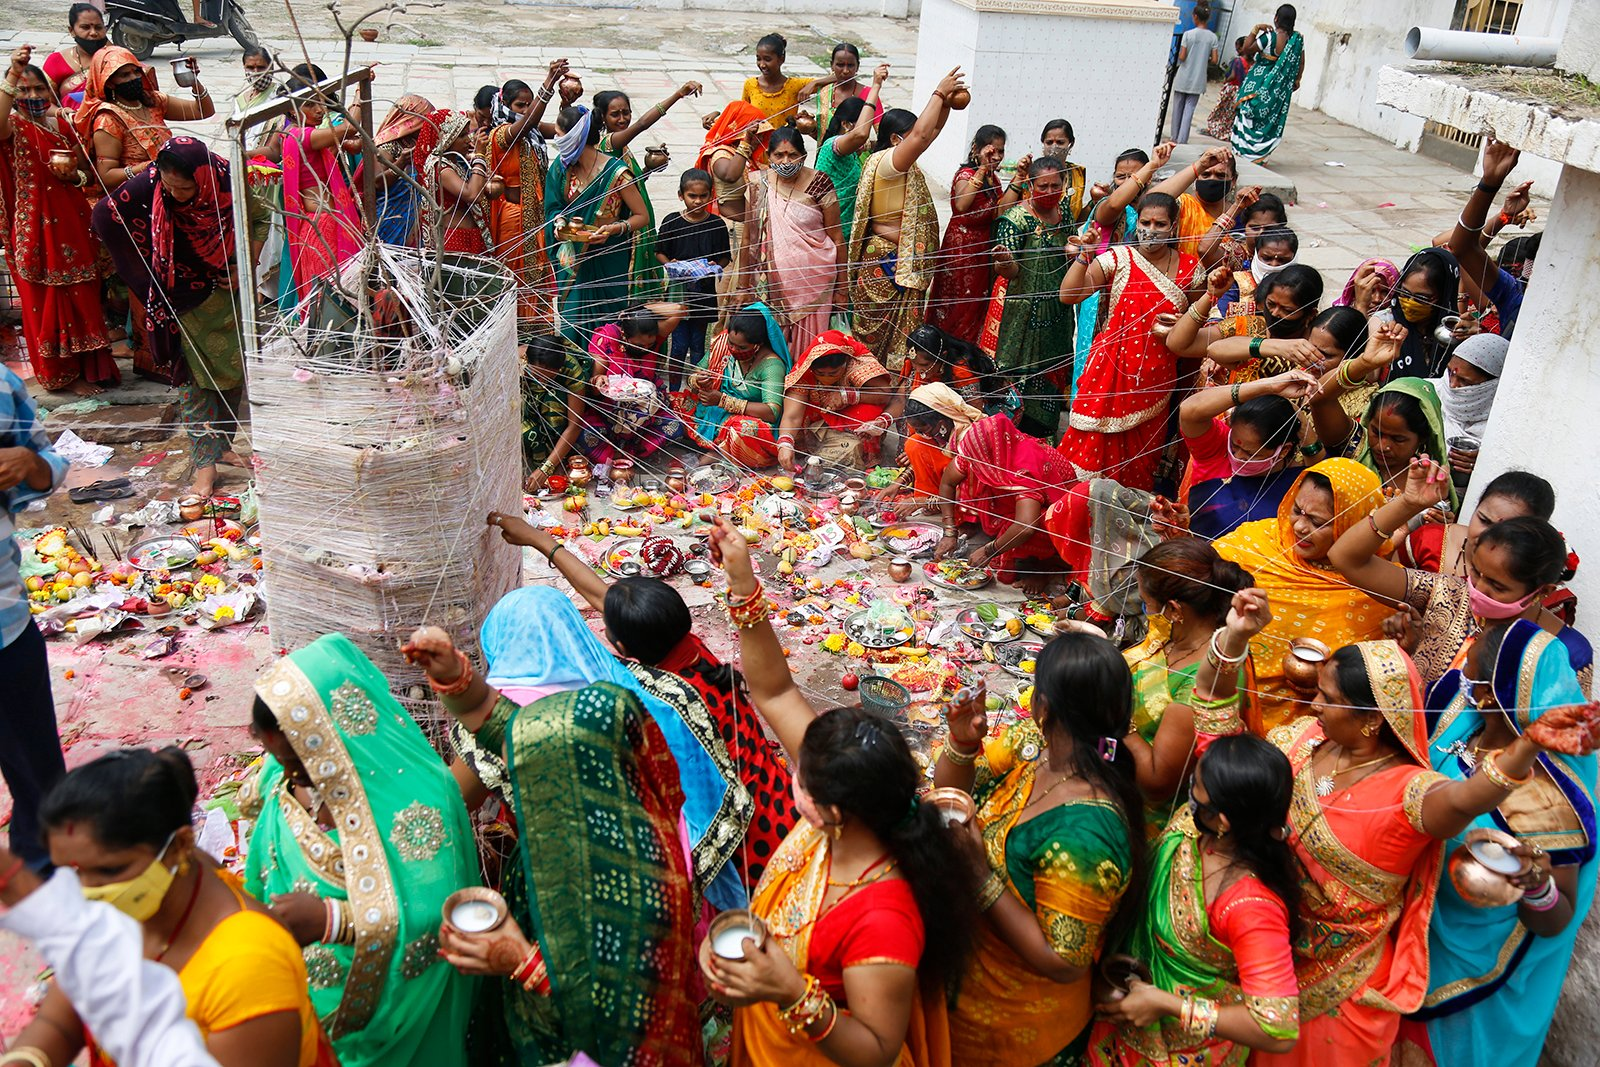 Married Hindu women perform rituals around a banyan tree during the Vat Savitri festival in Ahmedabad, India on Thursday, June 24, 2021. Vat Savitri is celebrated on a full moon day when women pray for the longevity of their husbands.  (AP Photo / Ajit Solanki)